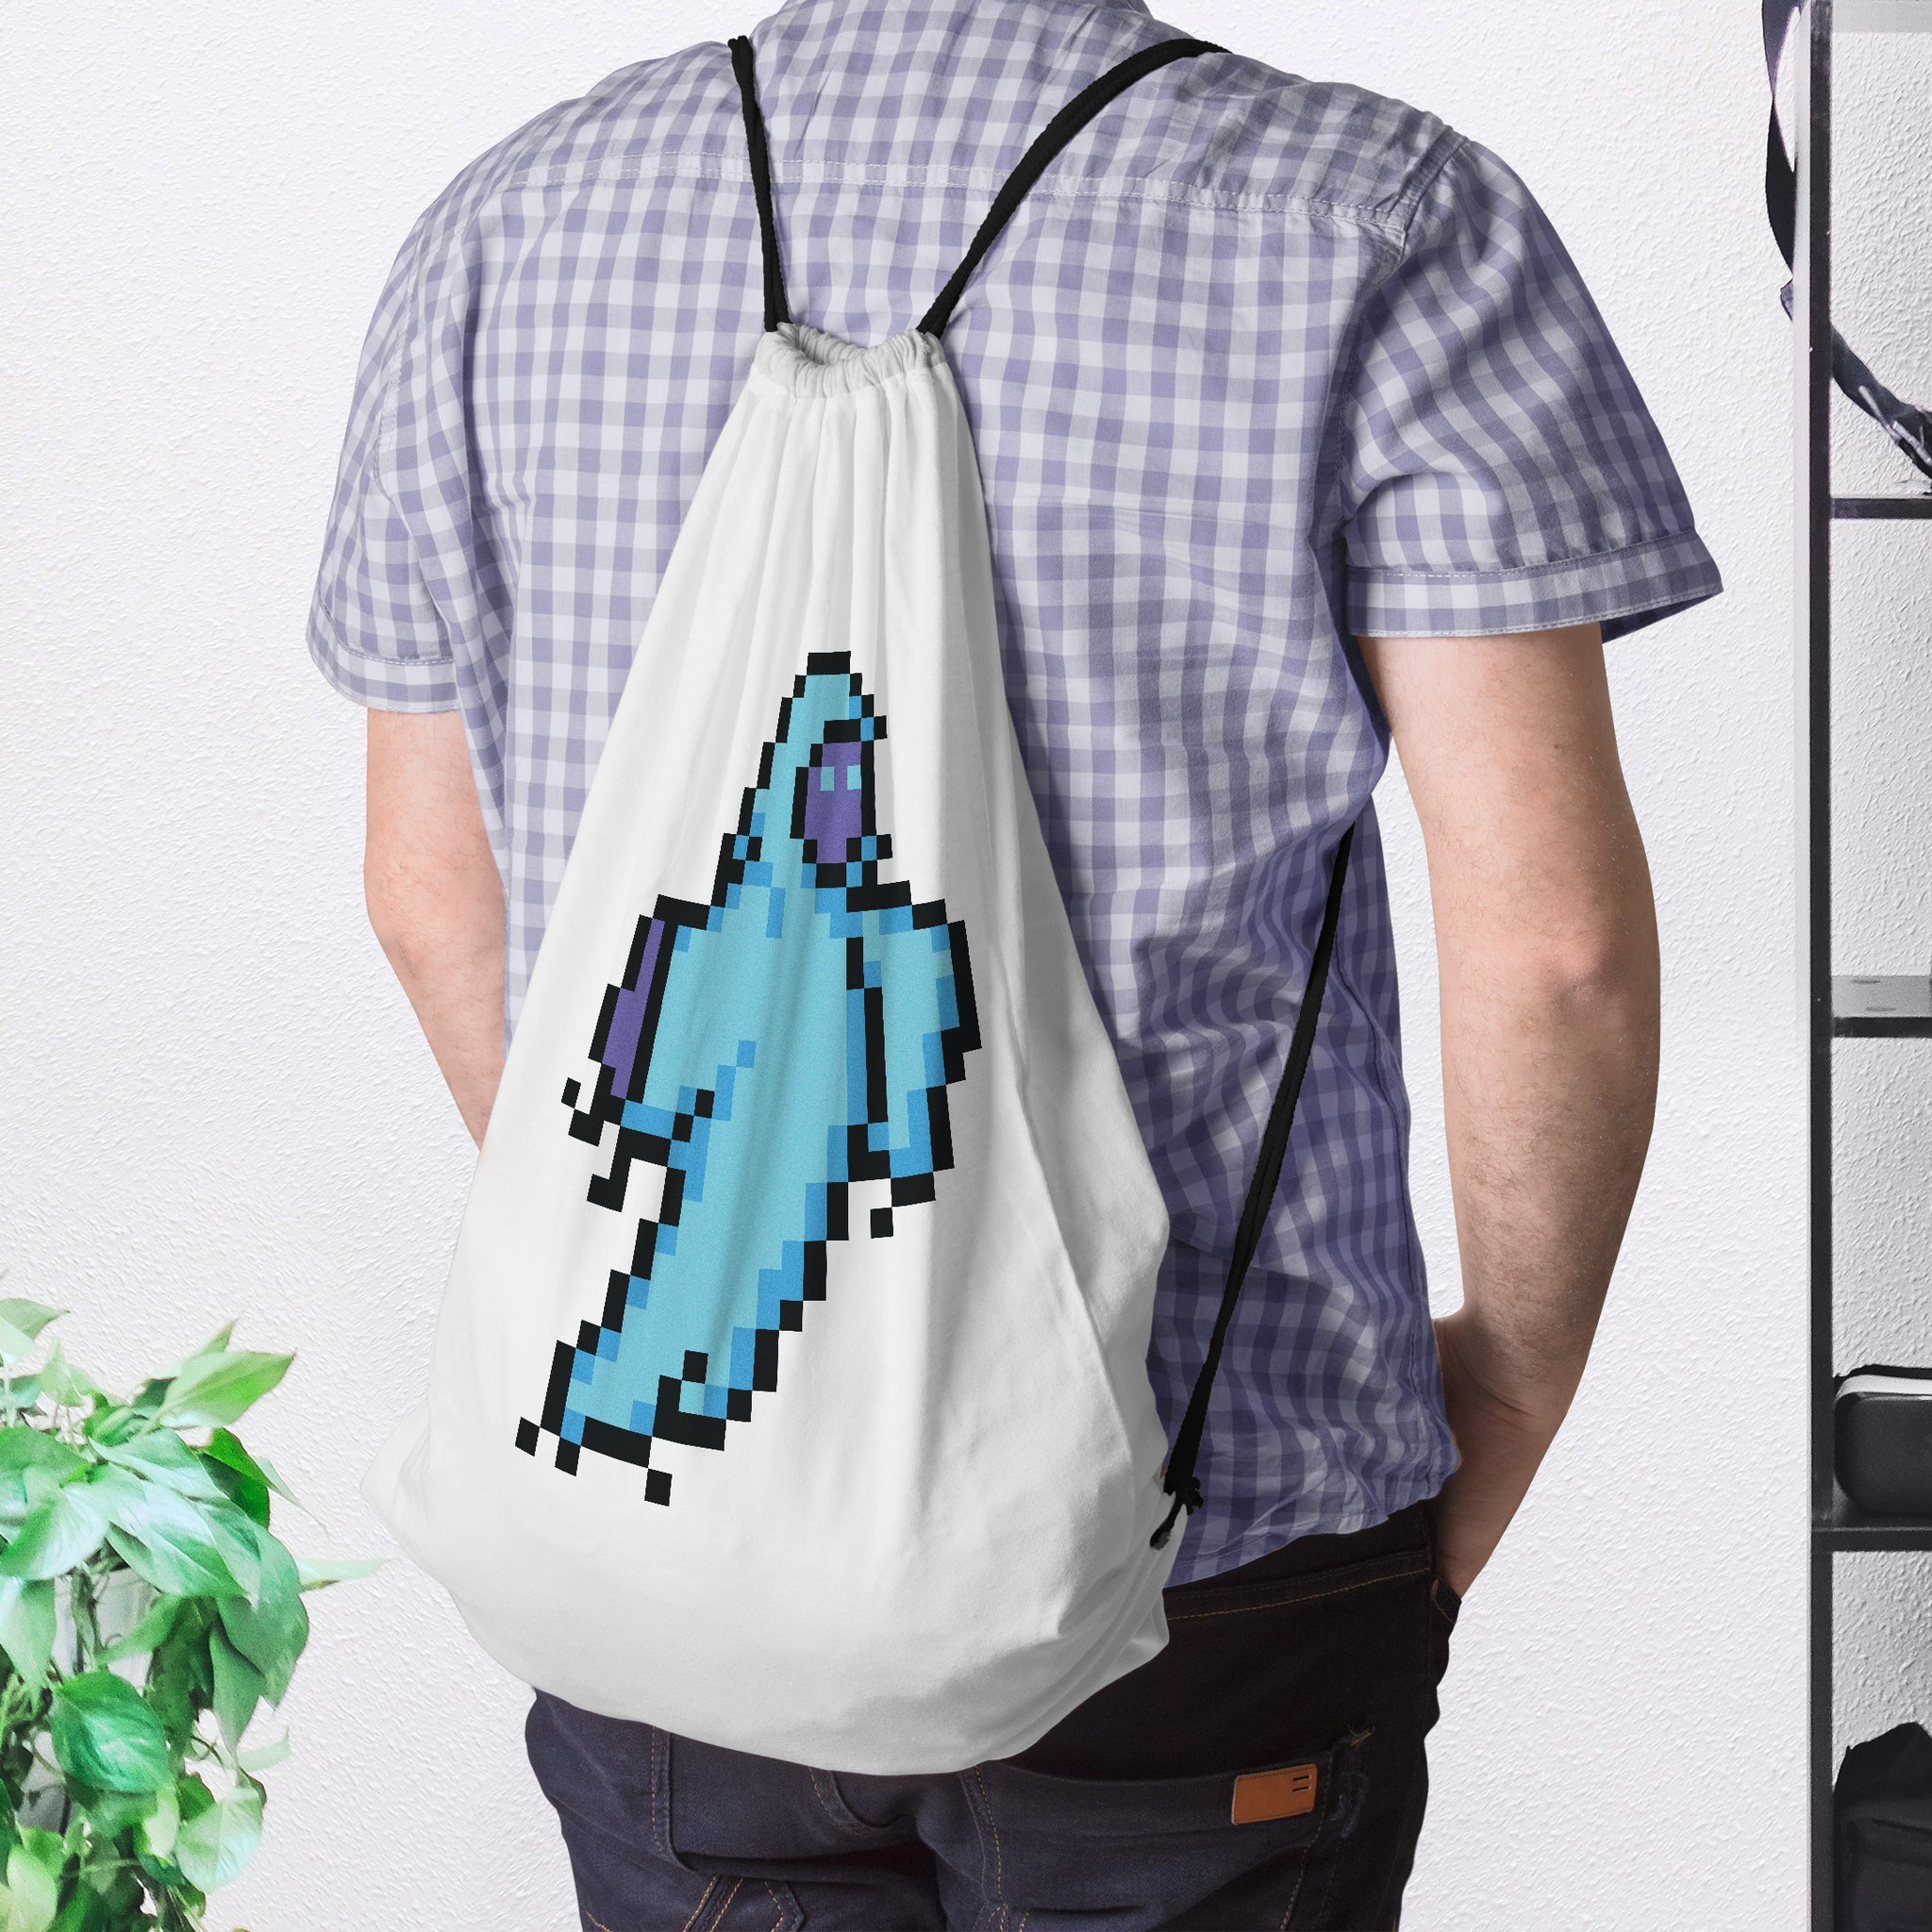 8-Bit Ghost Drawstring Bag - Space Lake